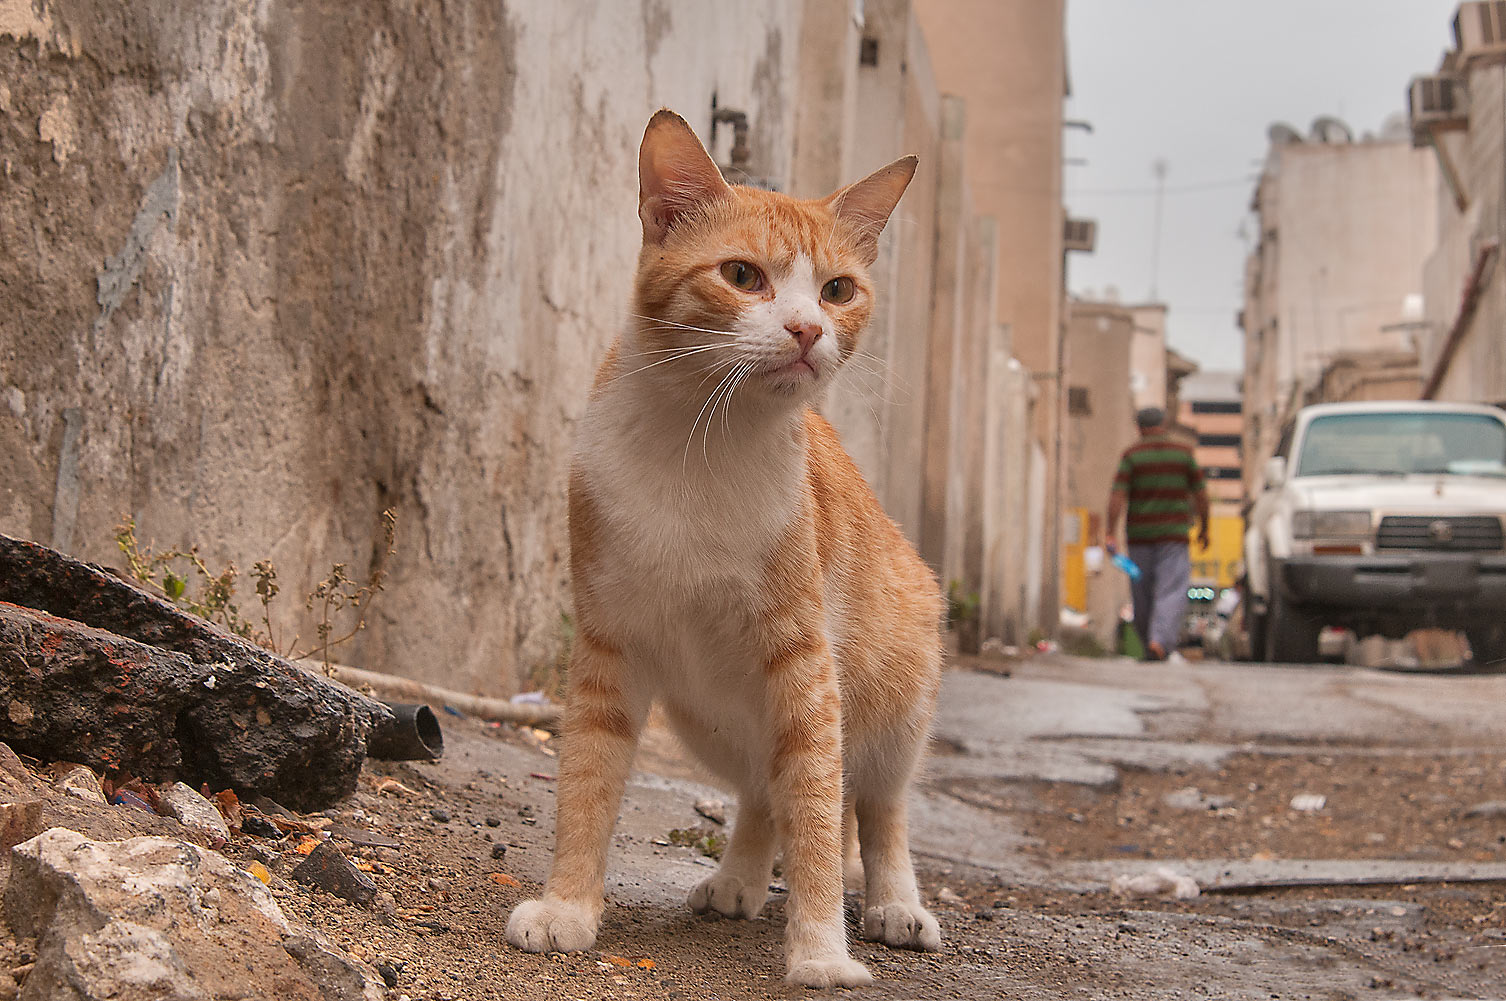 Bicolor arabian mau cat in sikka (narrow alleyway...St., Musheirib area. Doha, Qatar